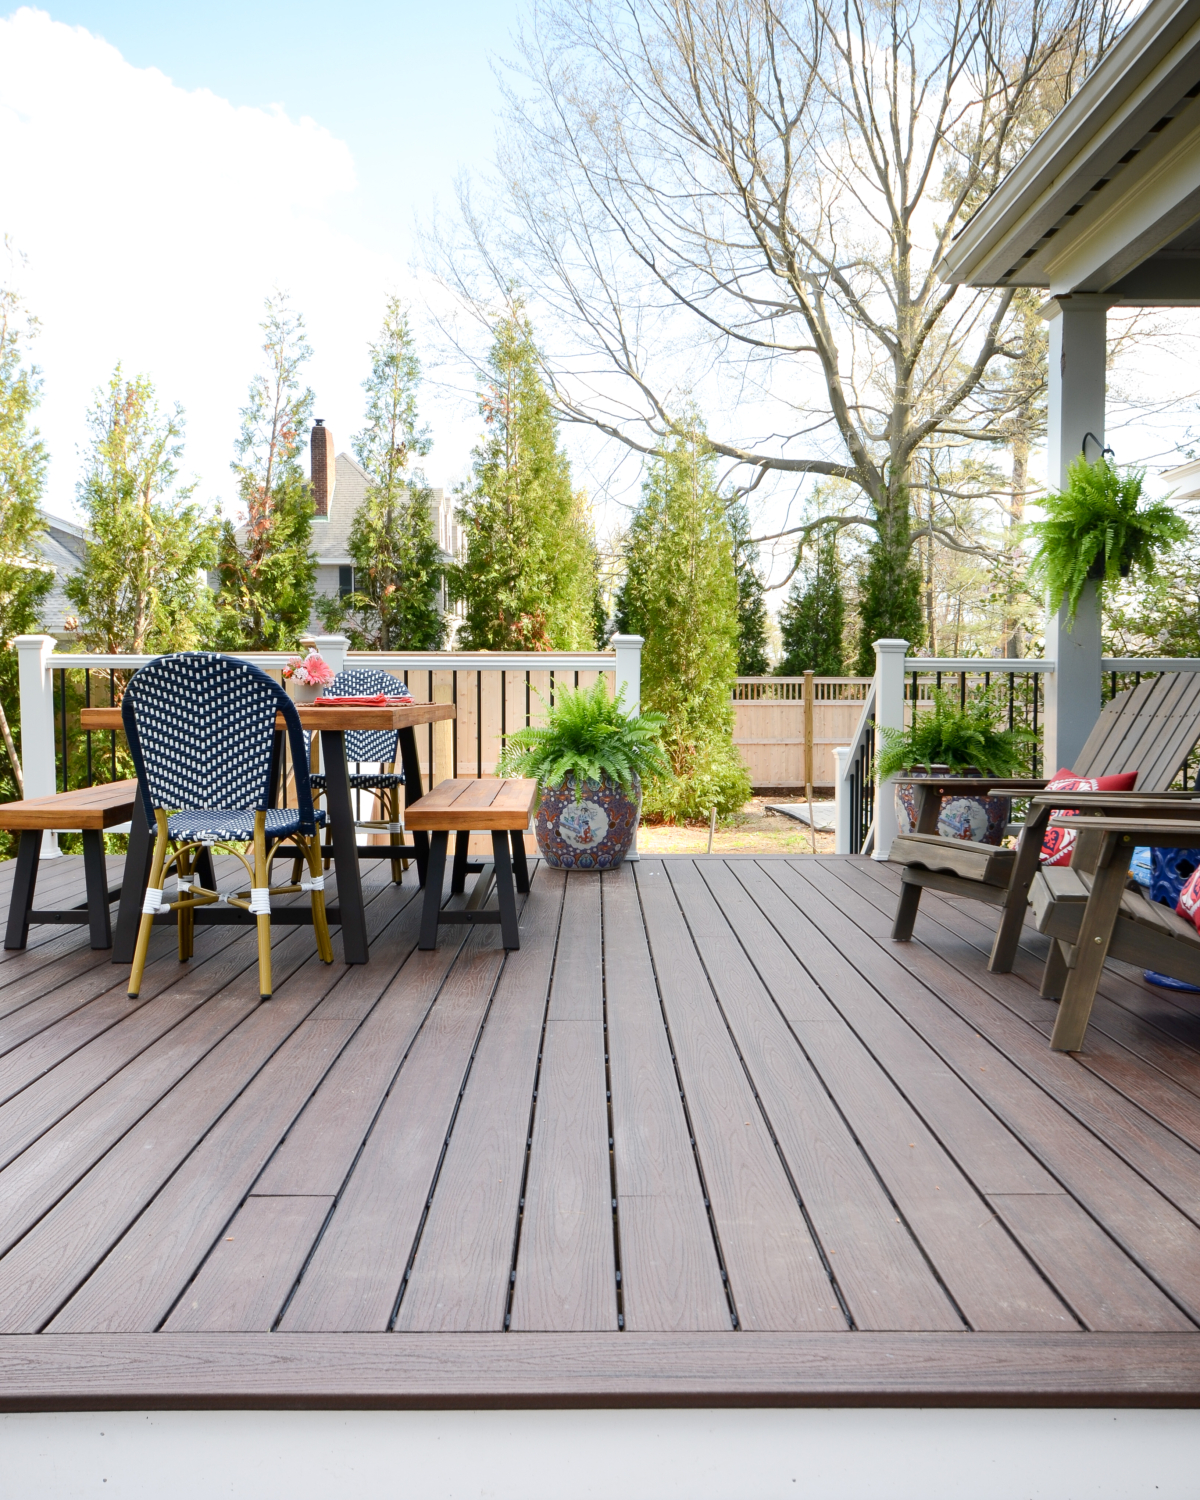 DIY deck reveal - how to build a gorgeous custom deck yourself with Trex materials